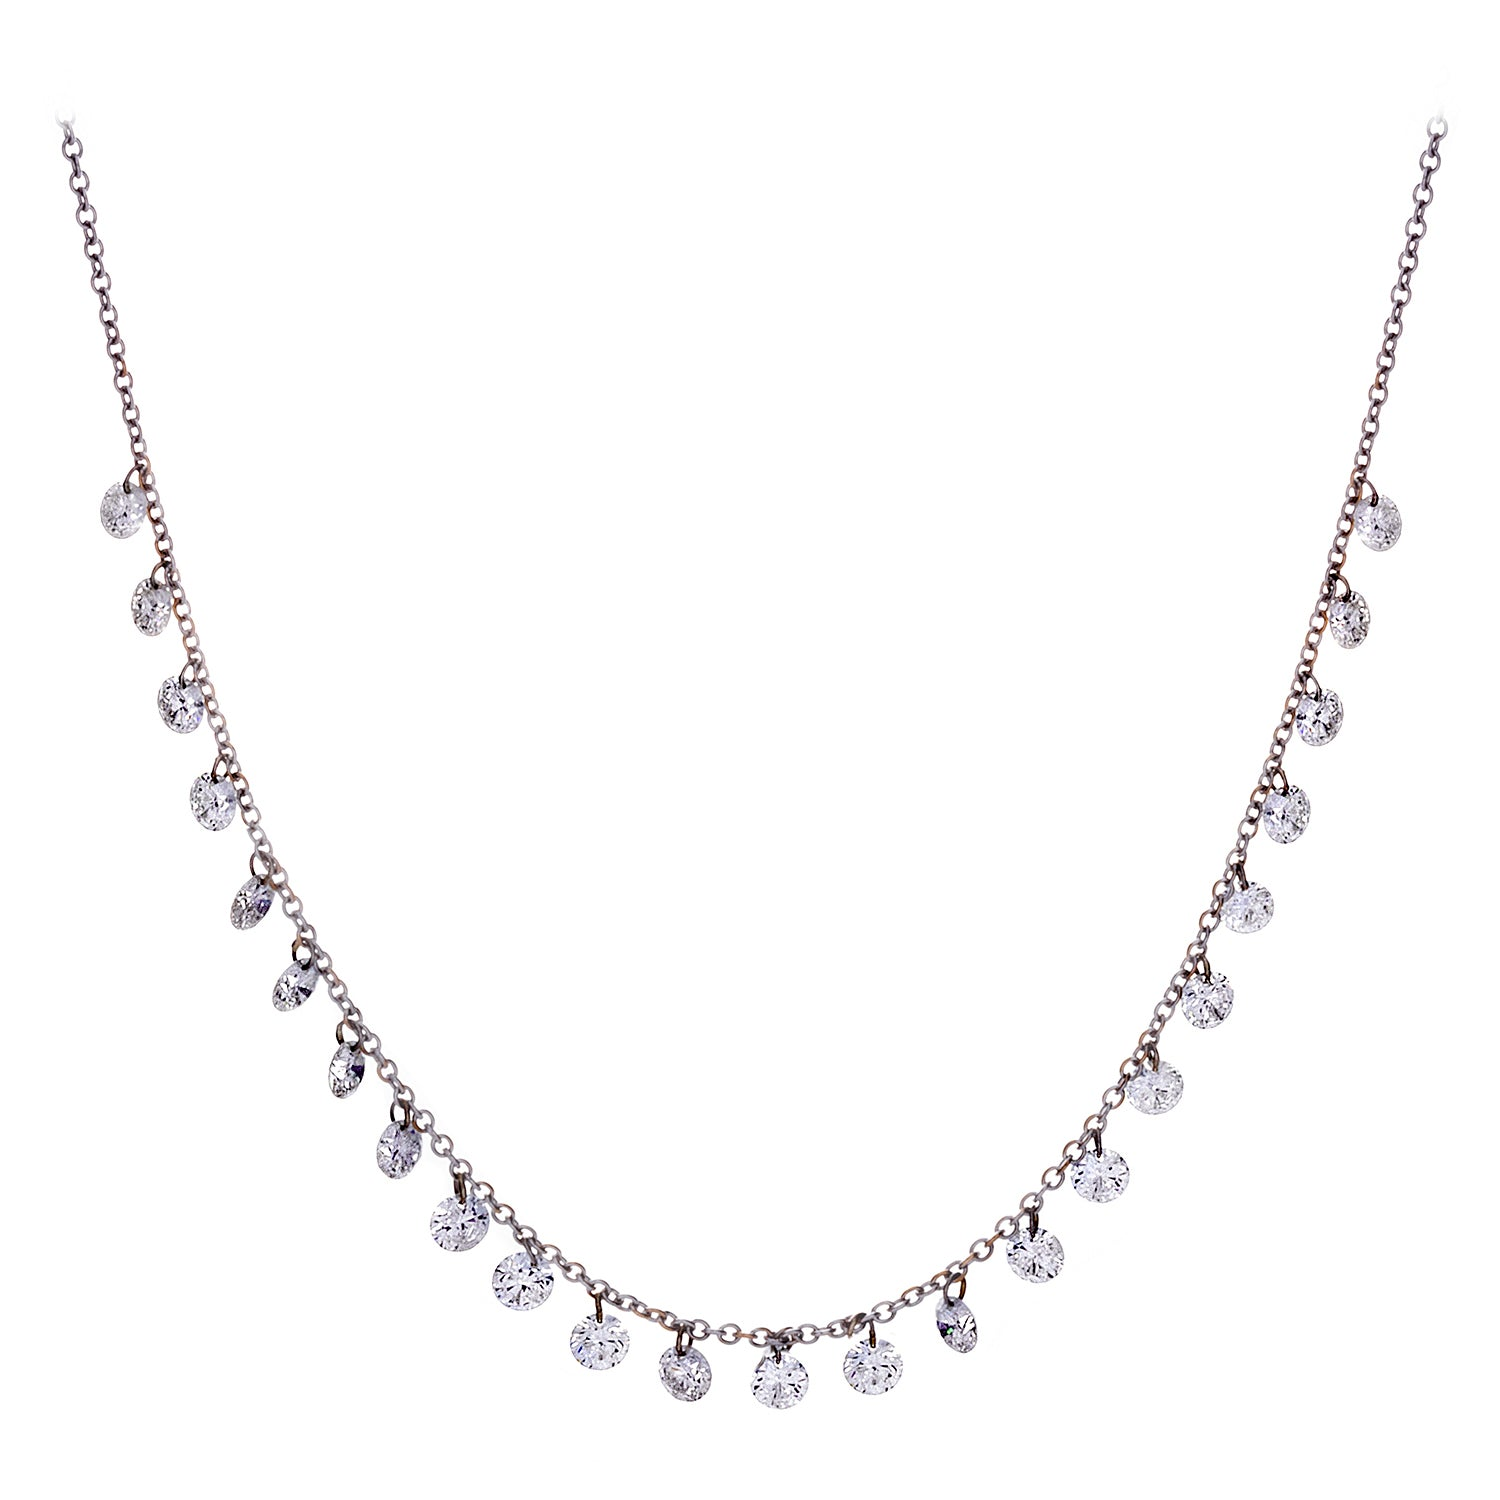 Floating Diamonds & 18K White Gold Necklace- SOLD/CAN BE SPECIAL ORDERED WITH 4-6 WEEKS DELIVERY TIME FRAME